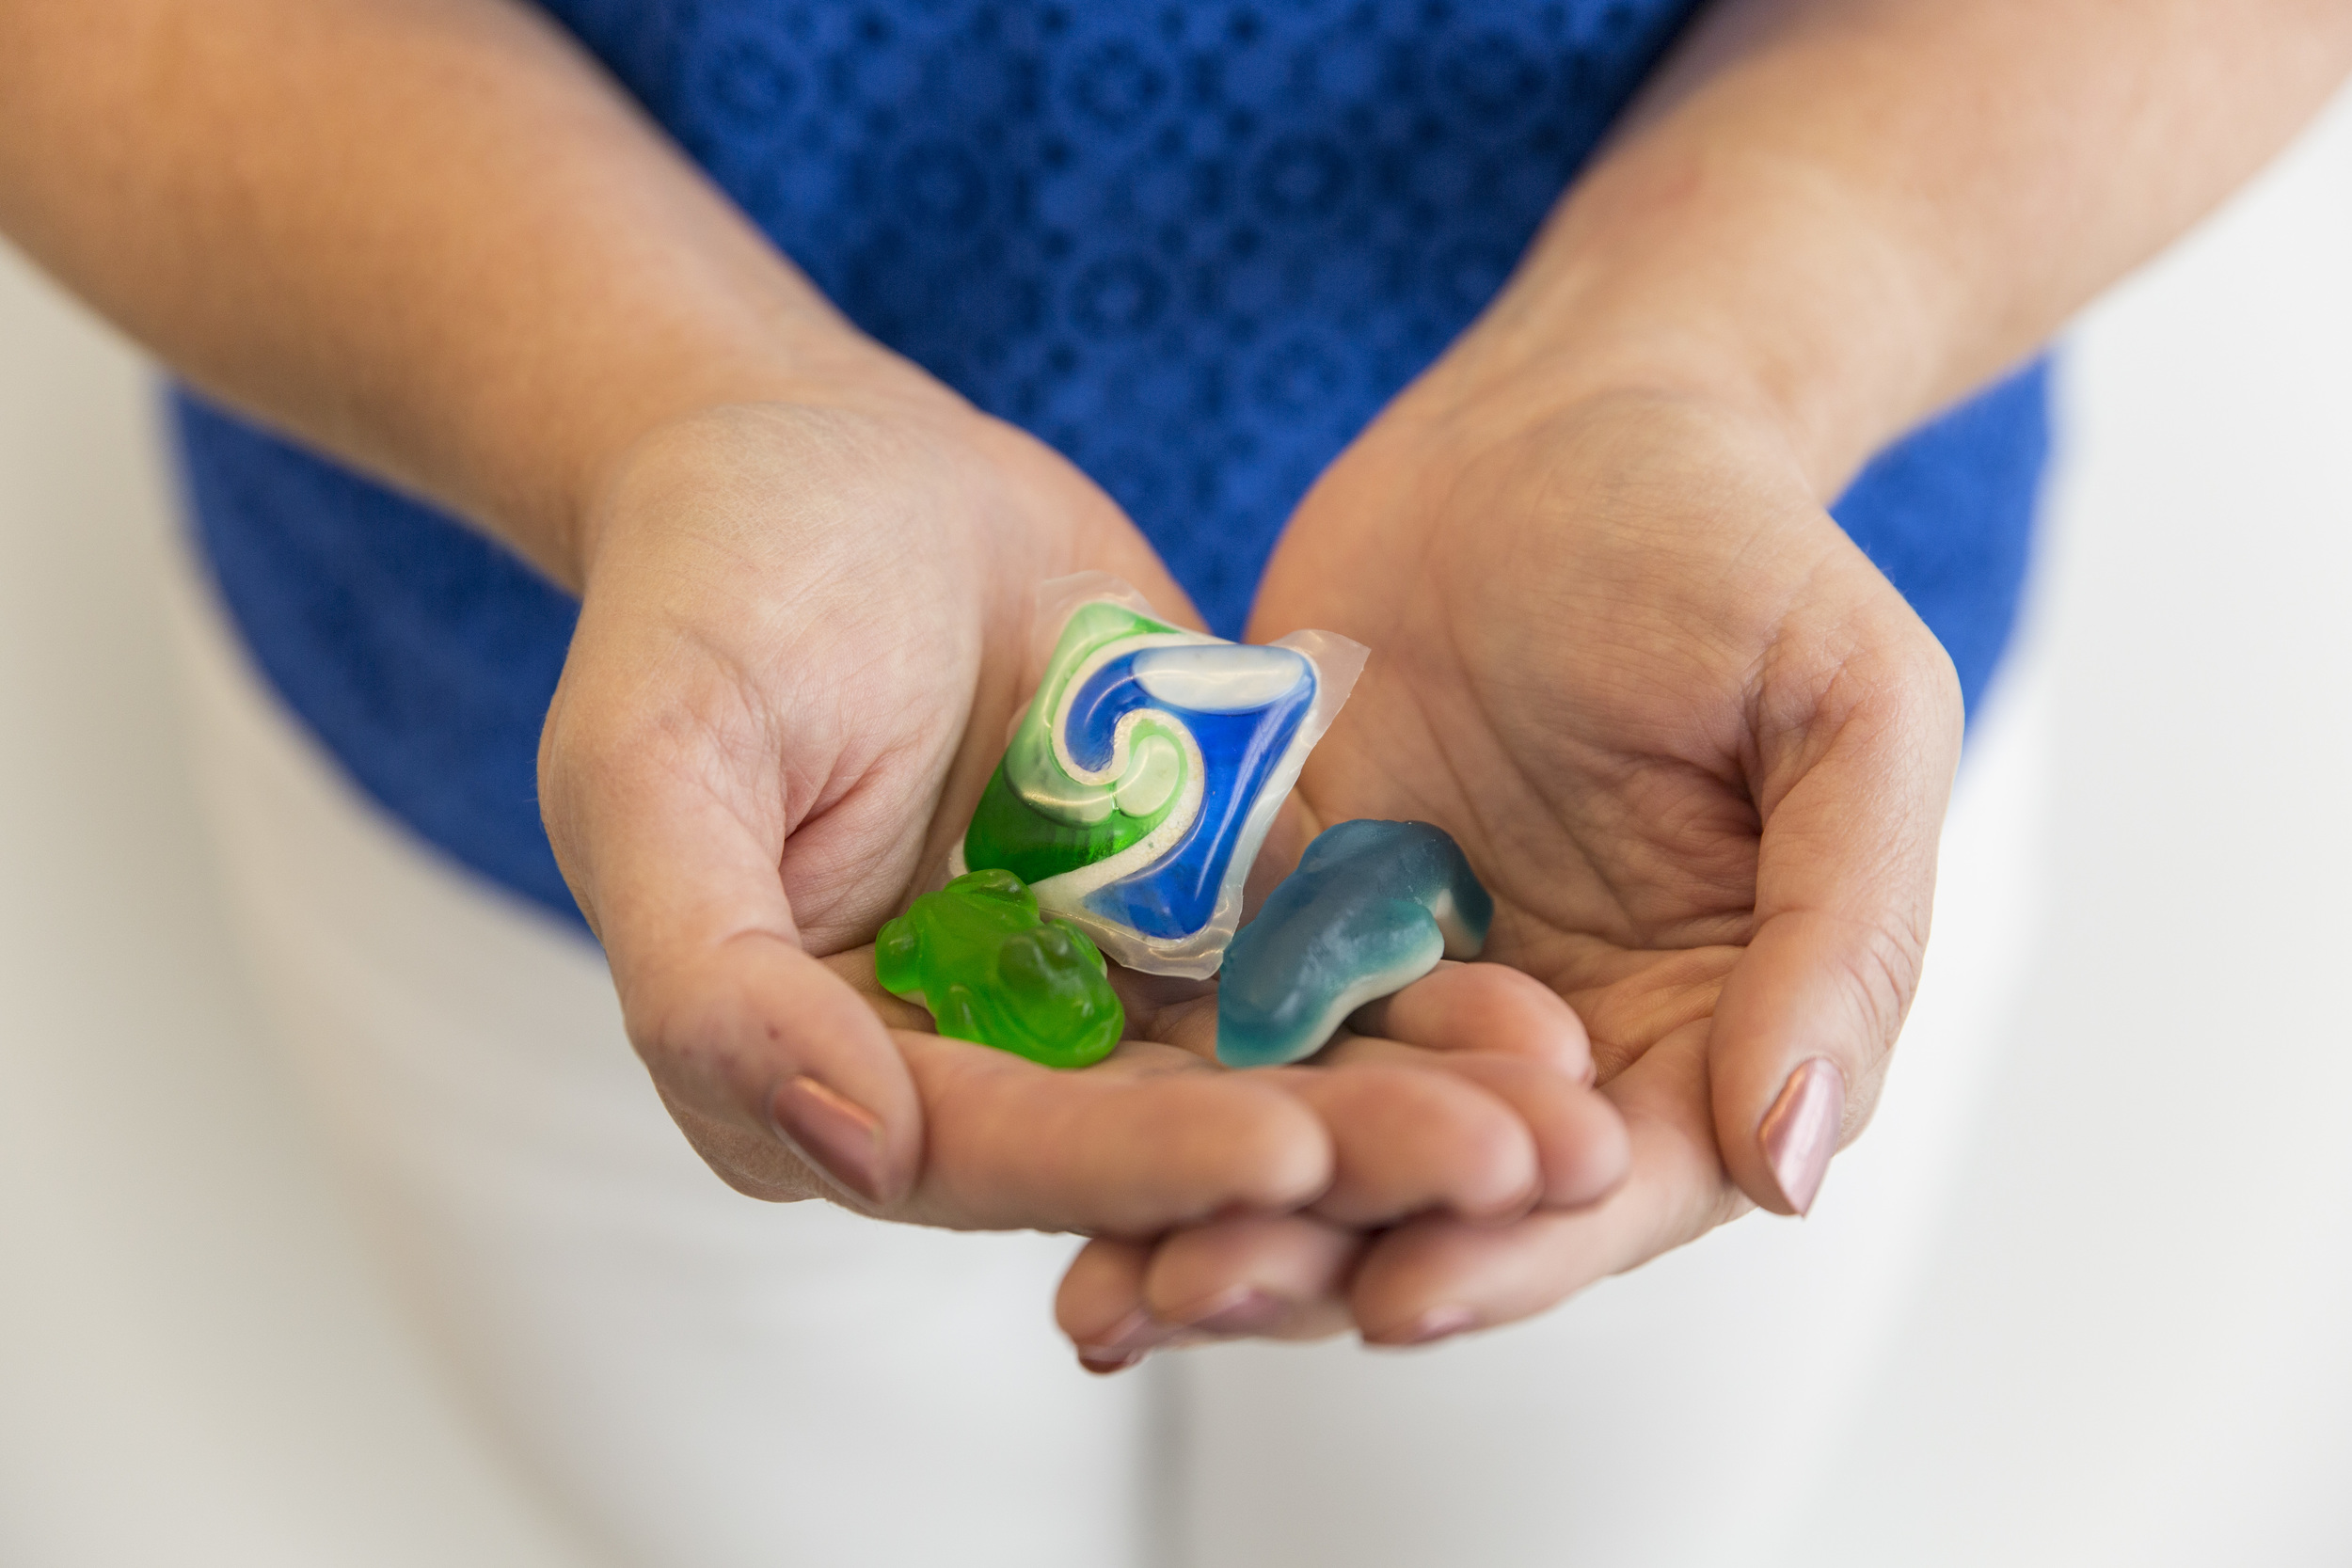 To a child, laundry detergent packets can look just like candy.